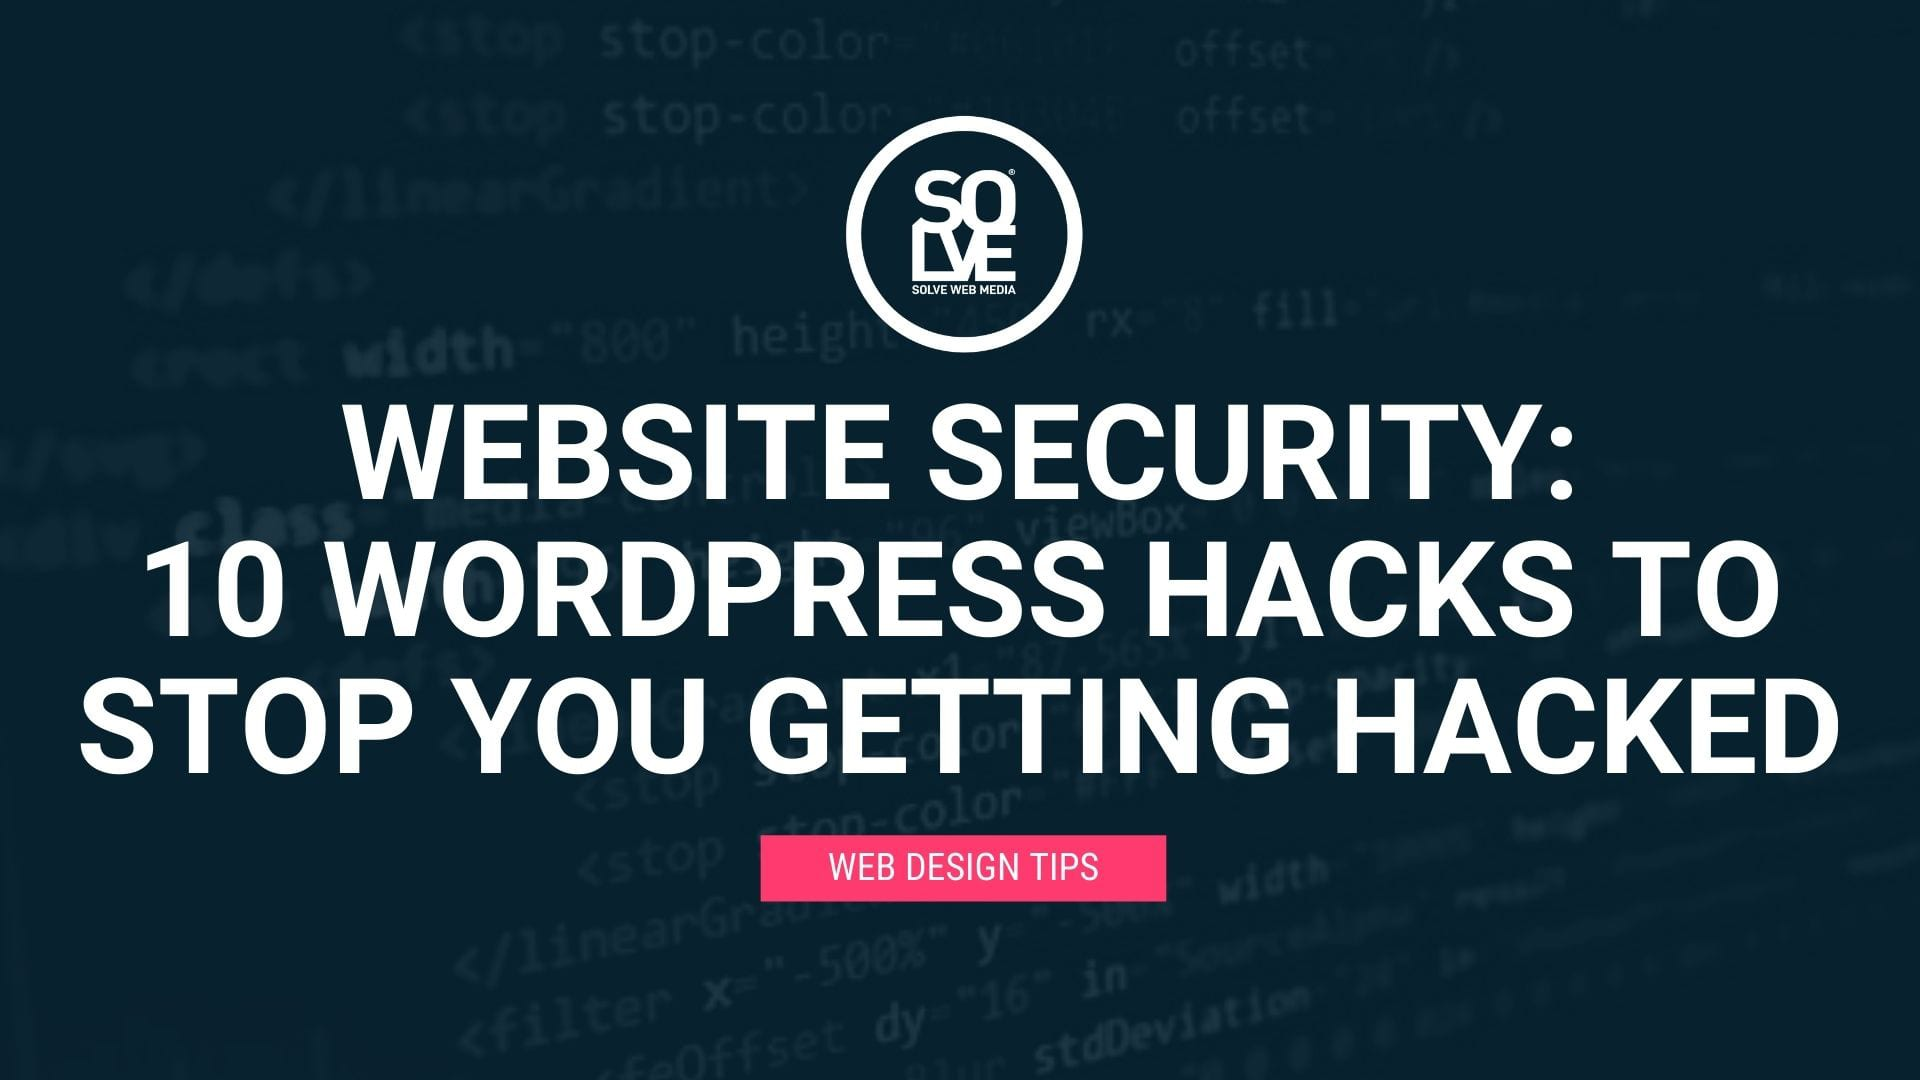 Website Security: <br>10 WordPress Hacks to Stop You Getting Hacked 1